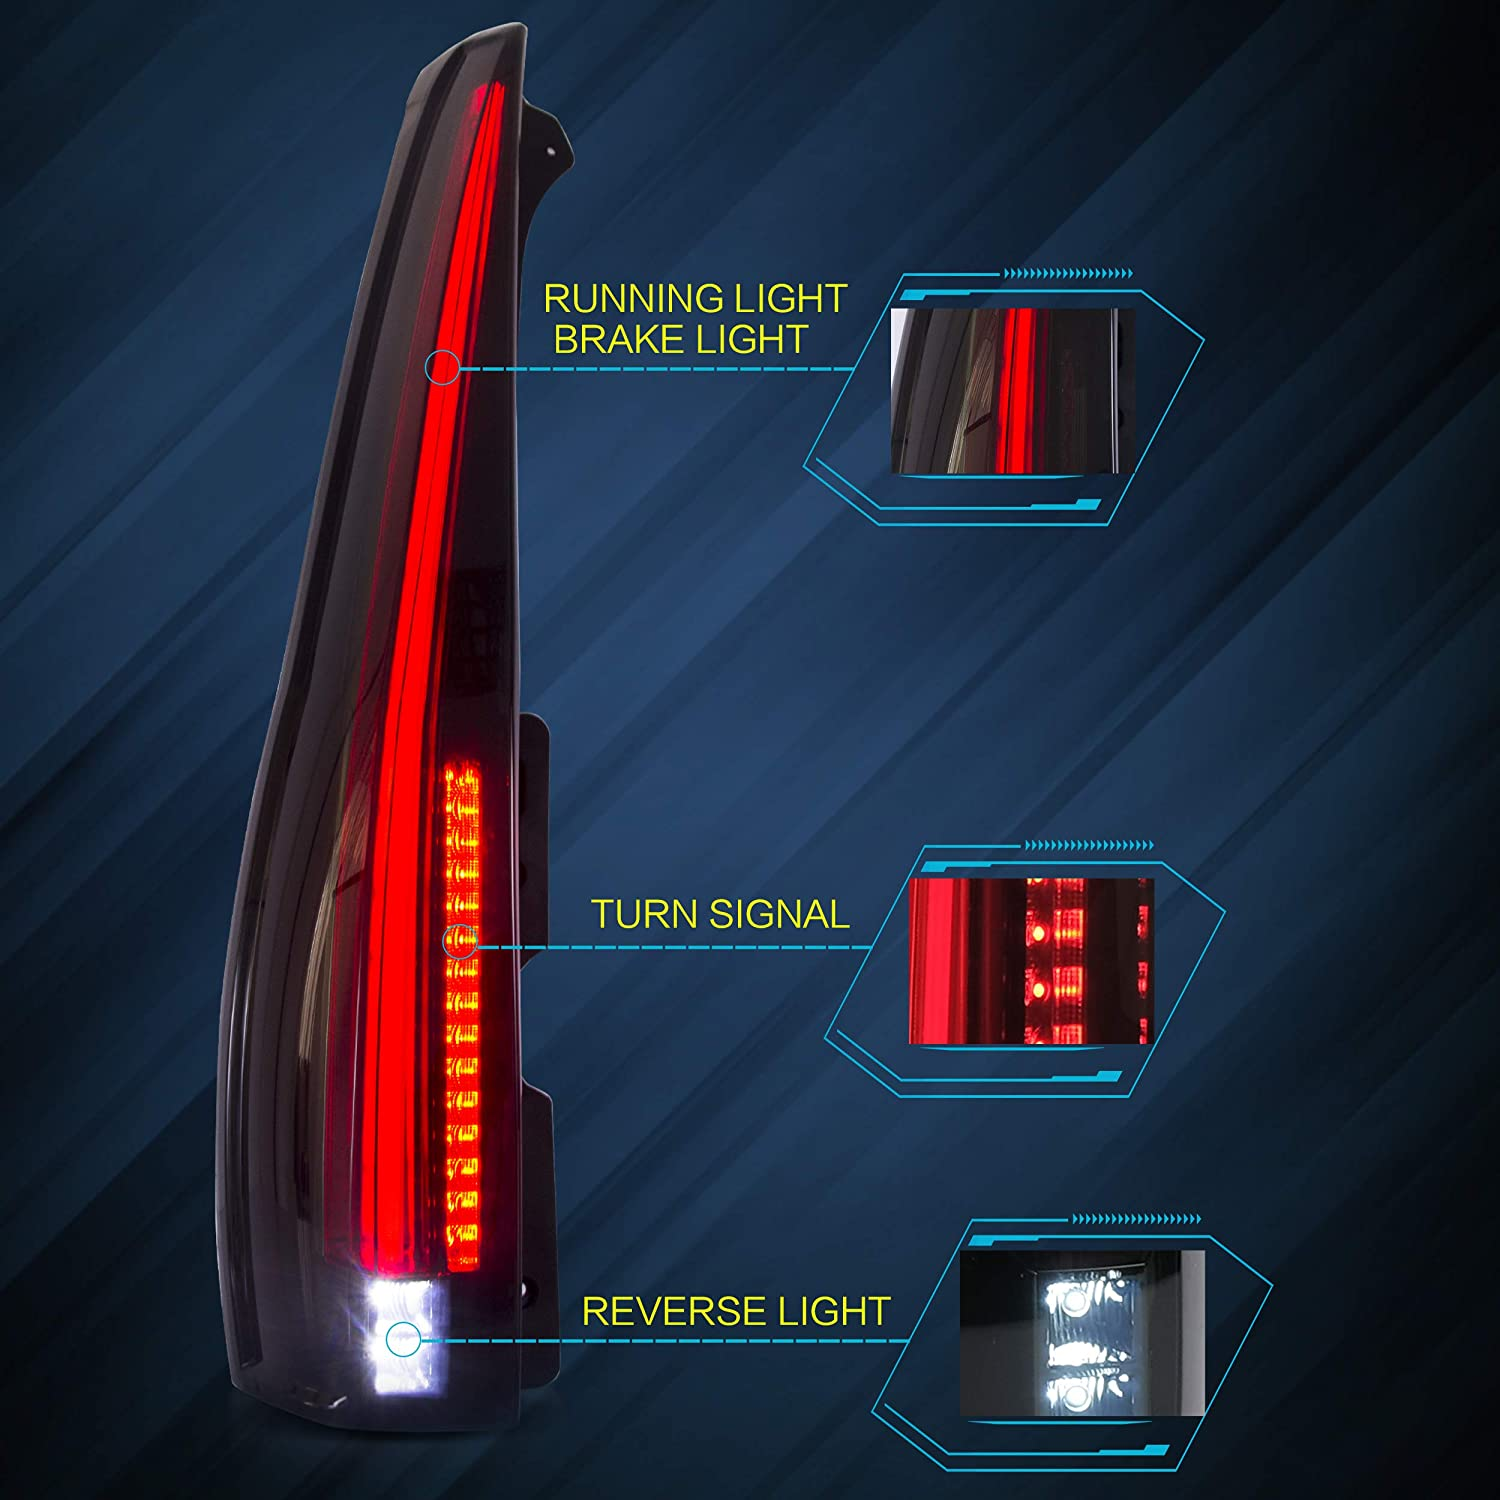 Plug-and-Play,Smoked LED DRL light Reverse Lights VLAND Tail Lights Assembly Compatible for Escalade LED Taillights 2007-2014 Taill Lamp assembly with Turn Signal